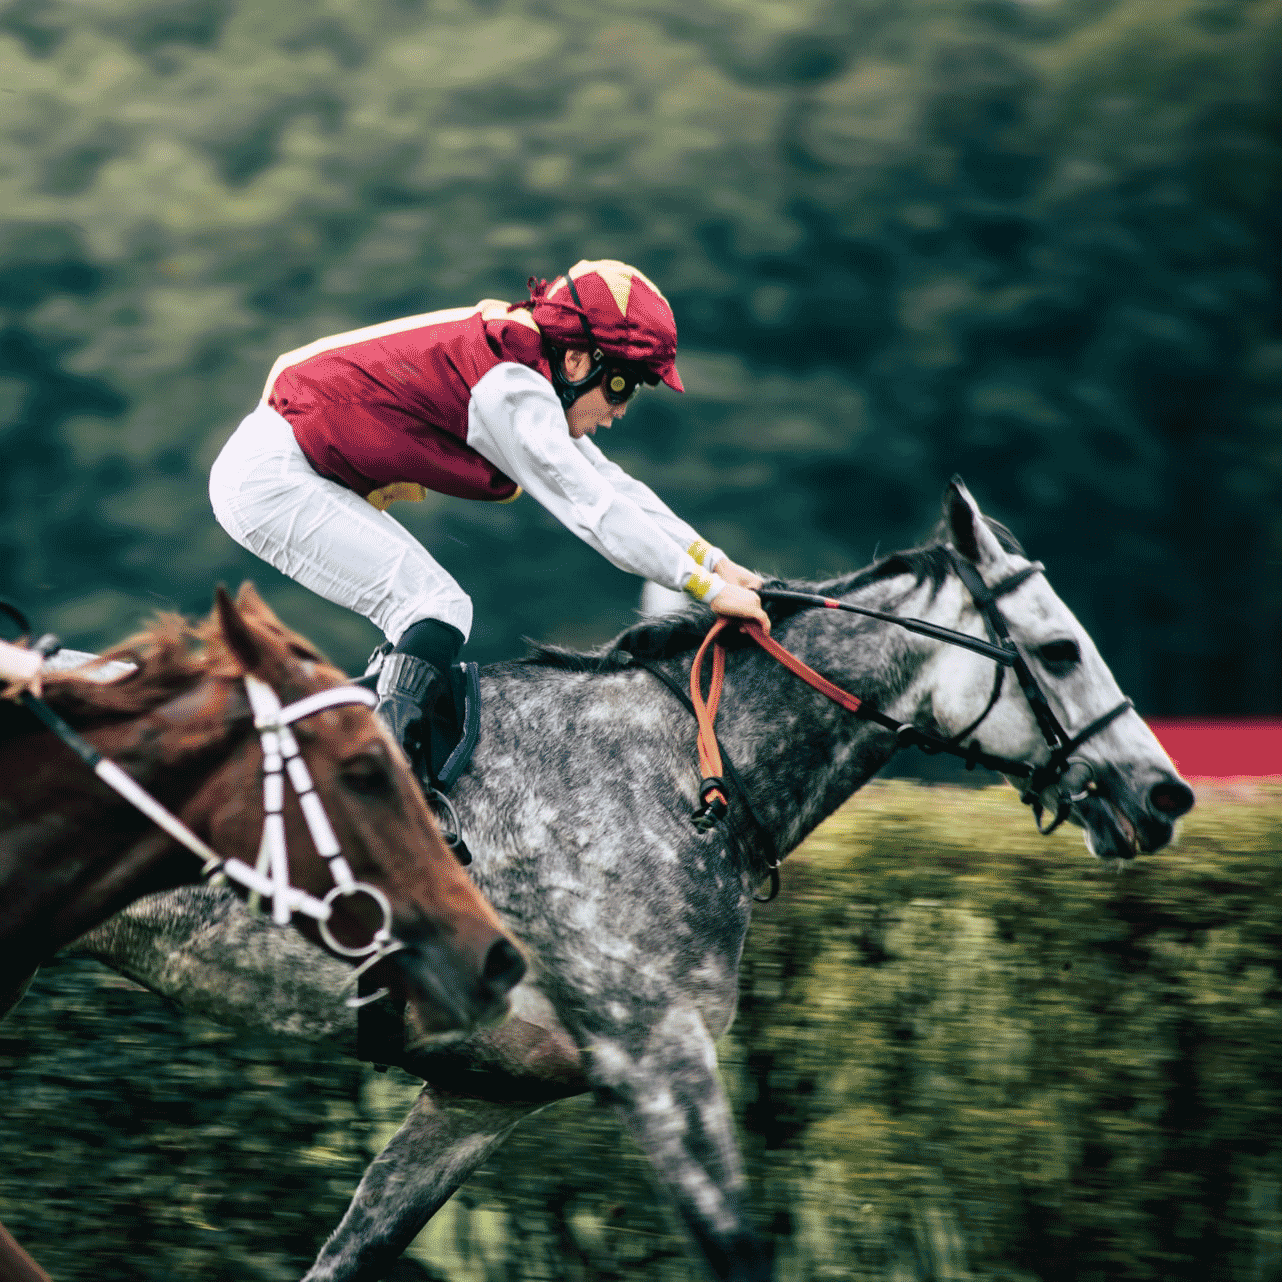 A jockey and horse racing on a track.